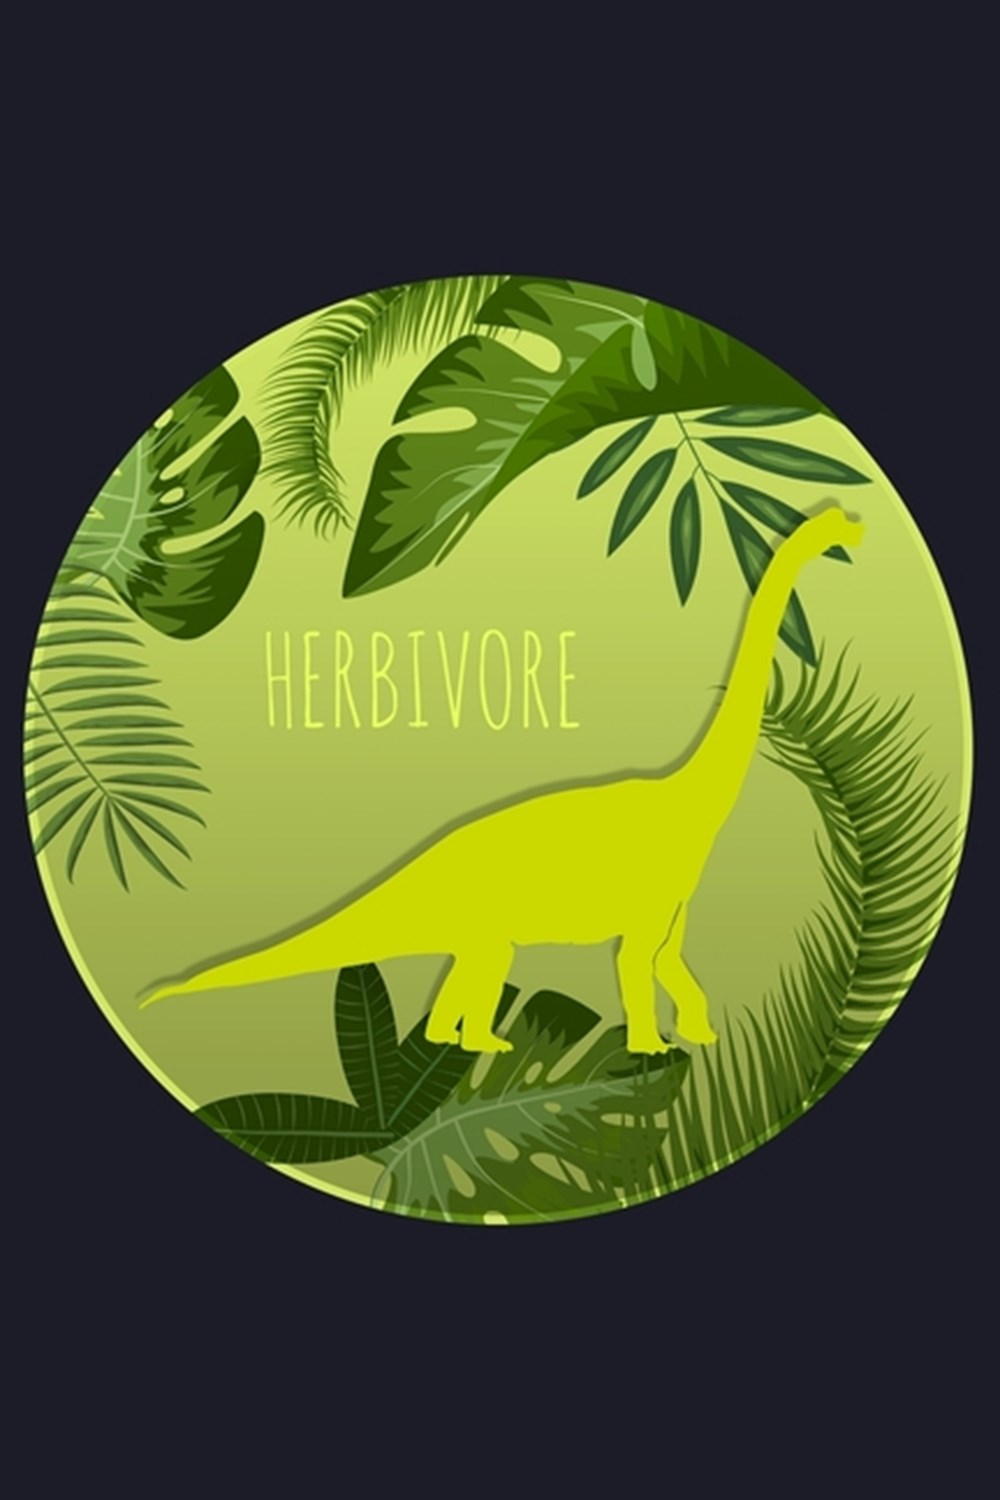 Herbivore Blank Cookbook Journal to Write in Recipes and Notes to Create Your Own Family Favorite Co